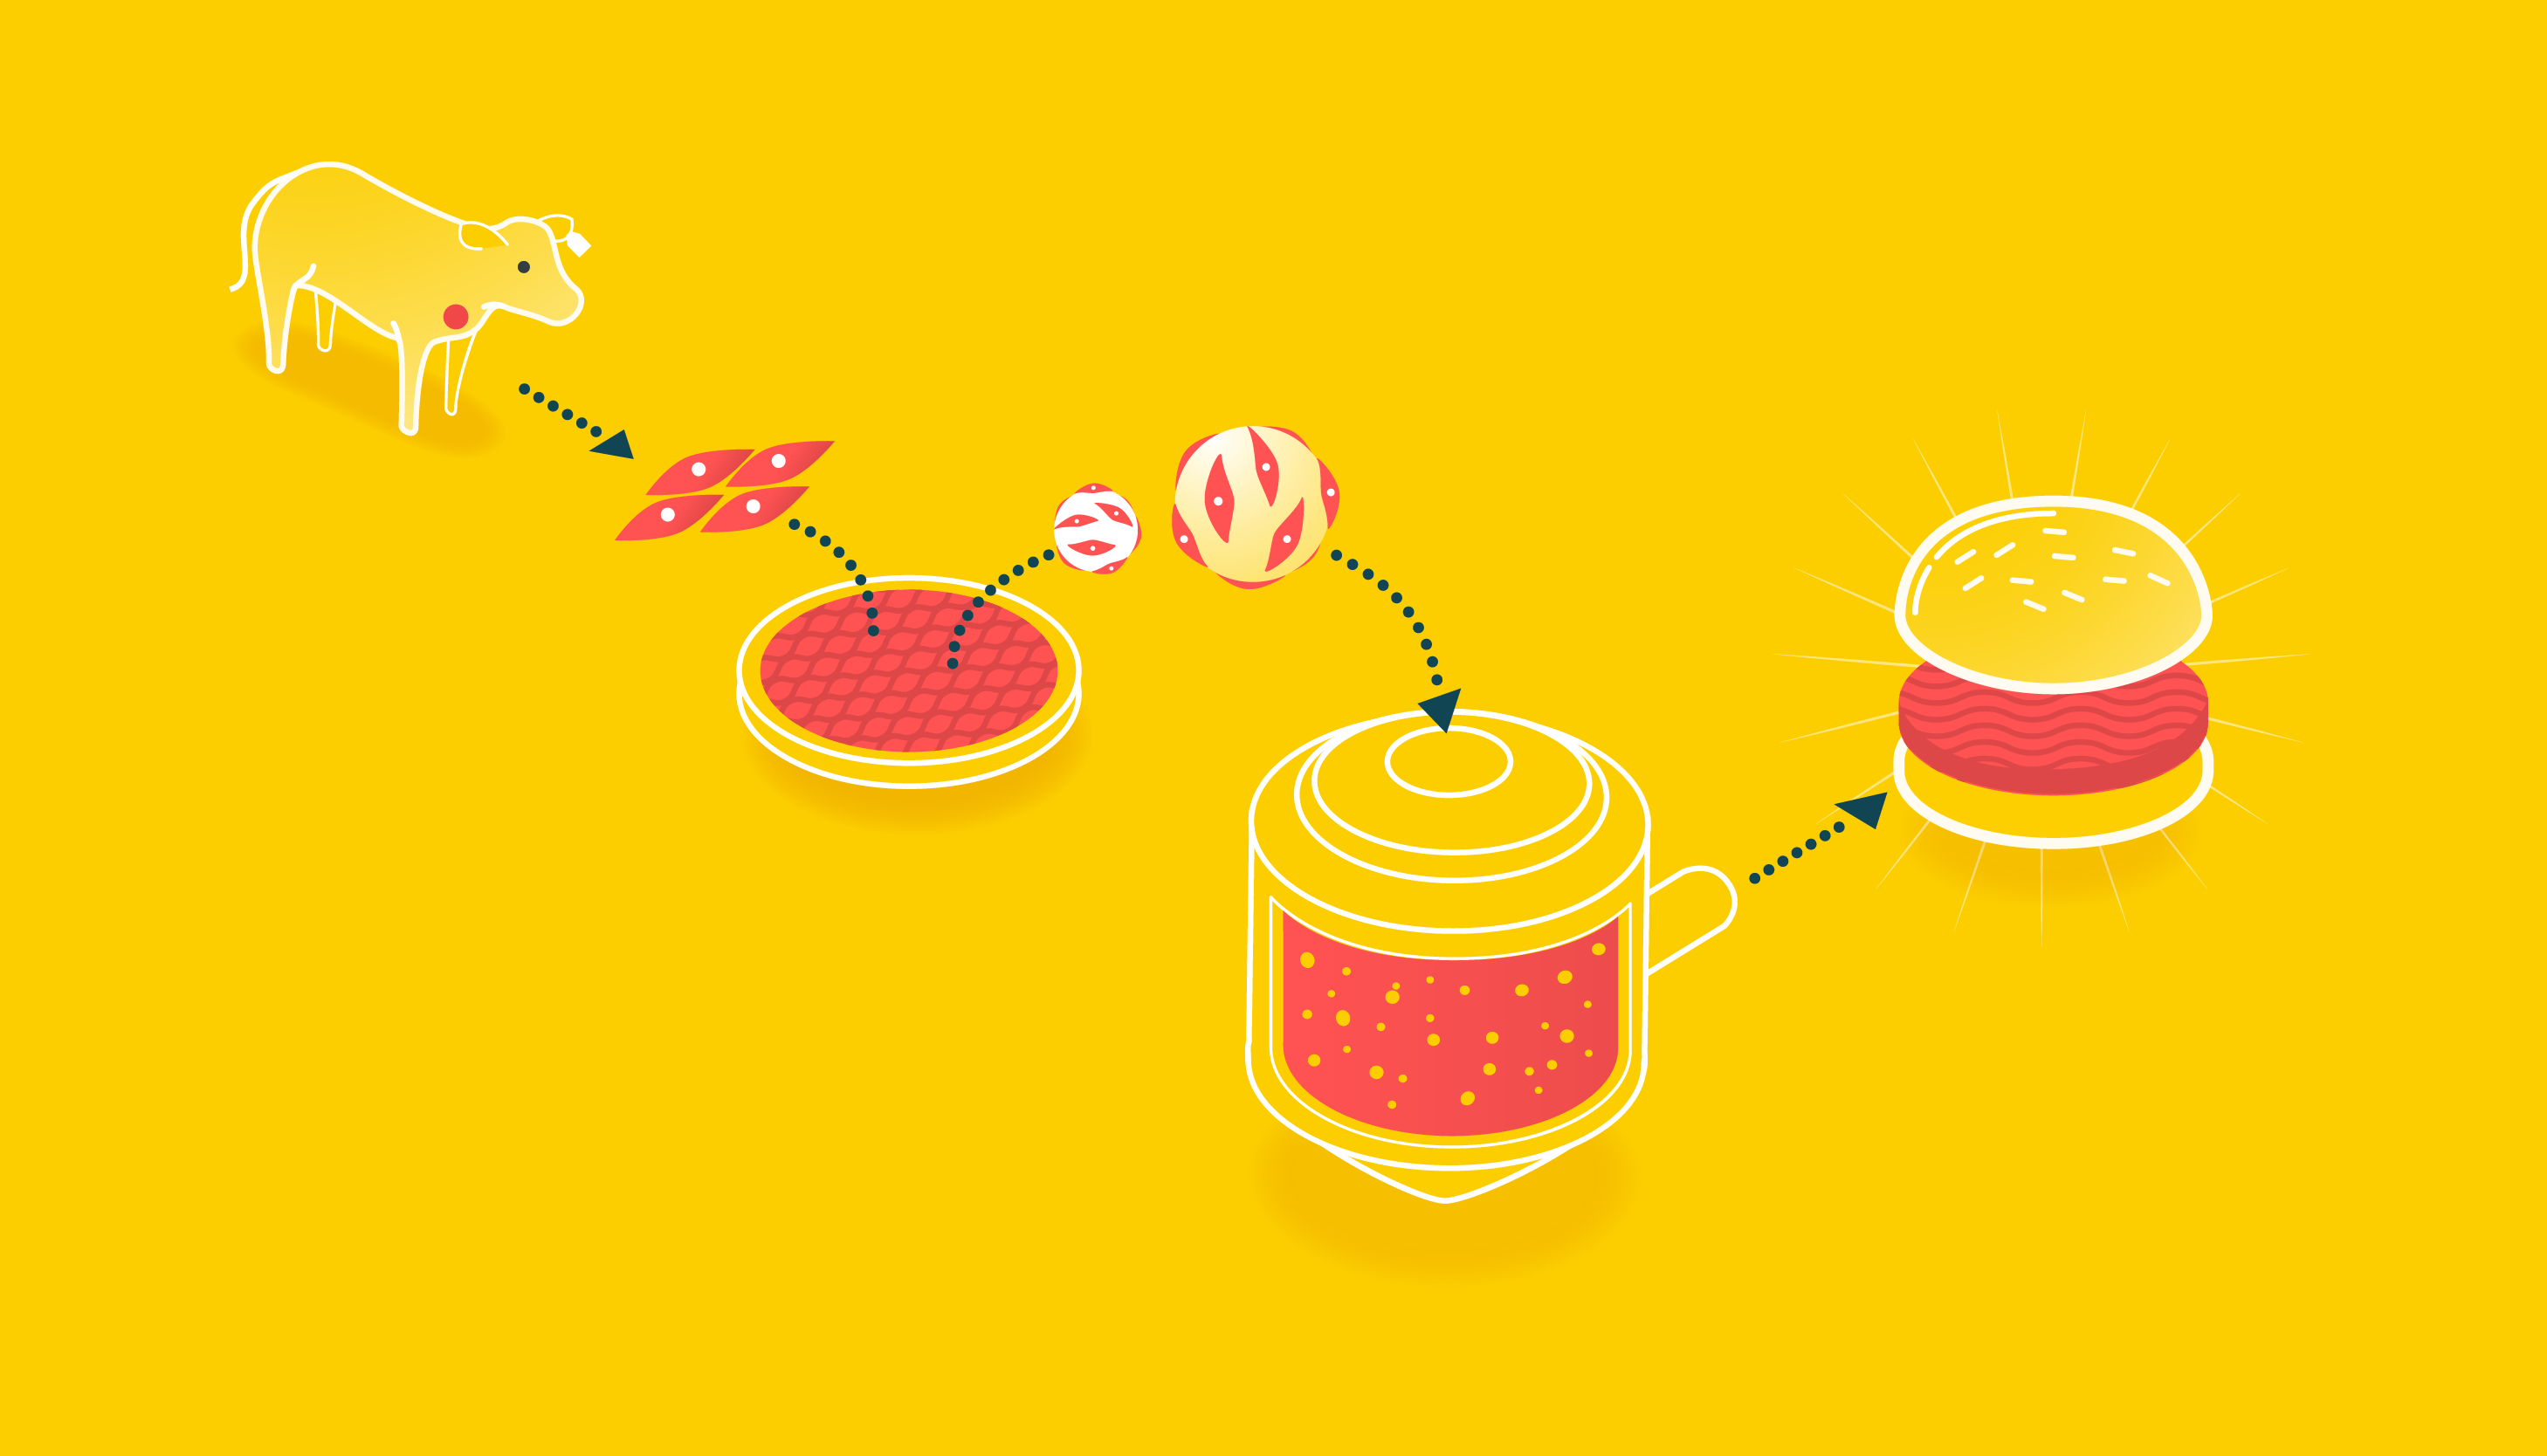 diagram of cell cultured hamburger production